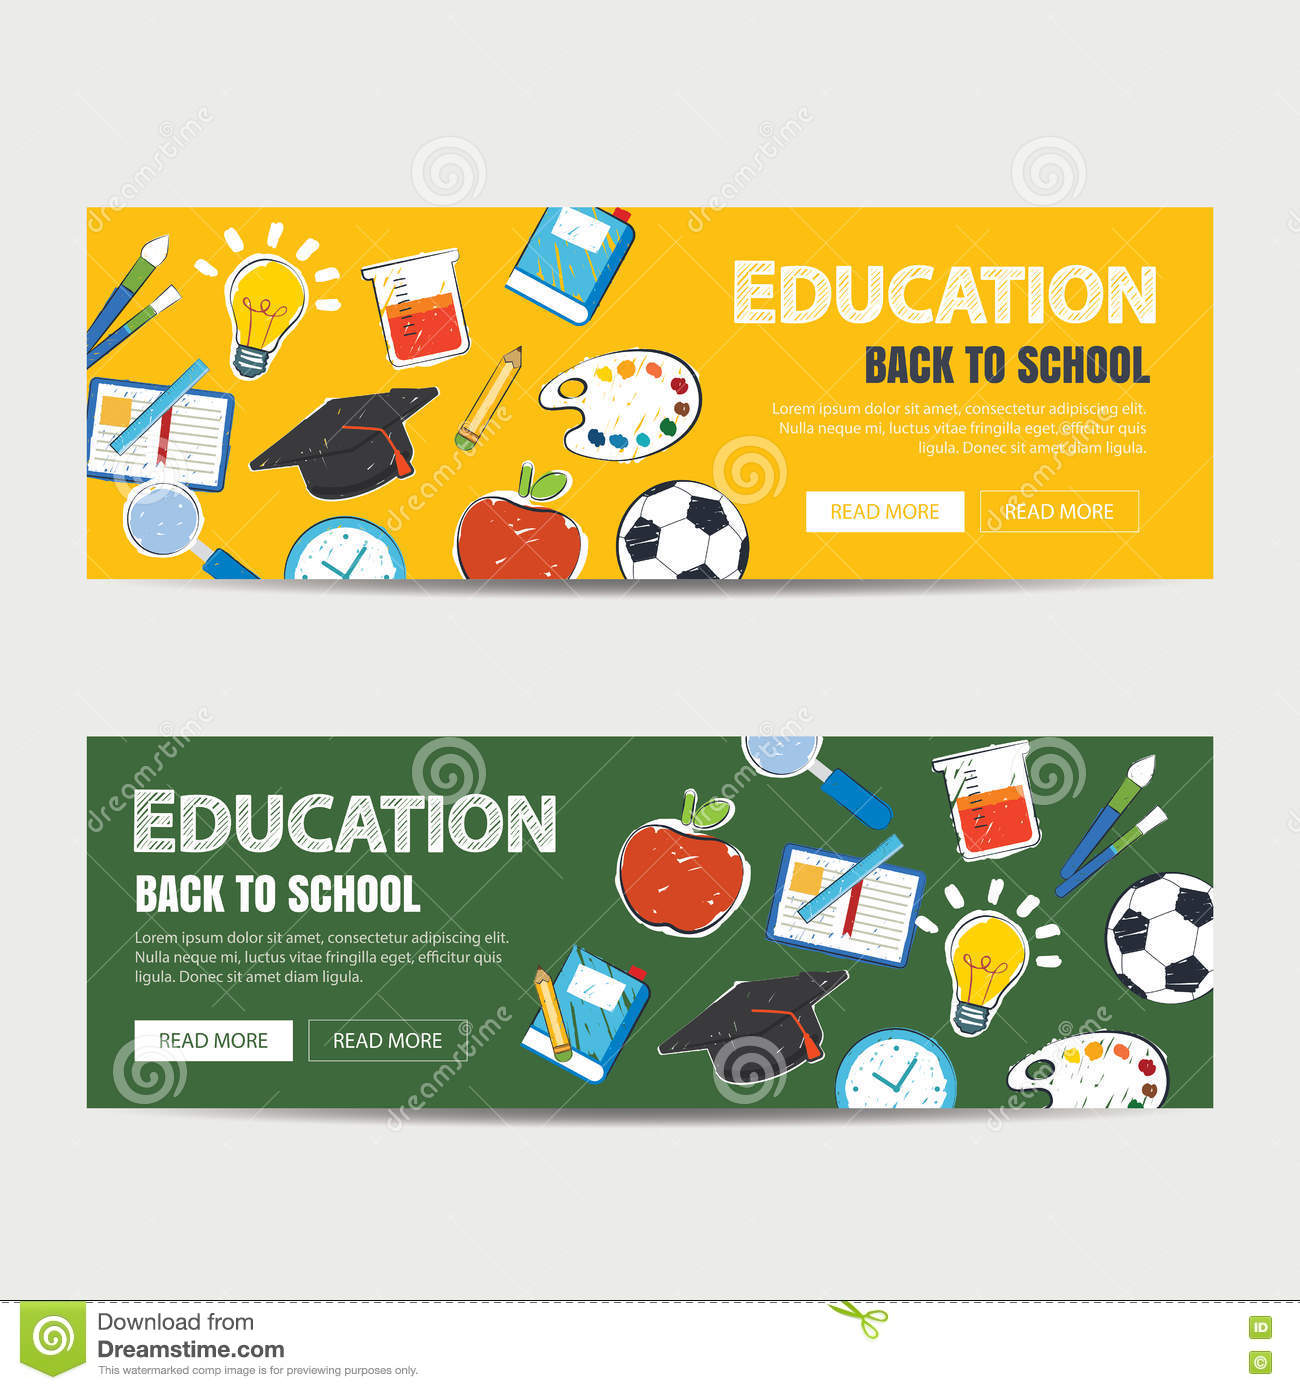 Education Banner And Back To School Background Template Stock Vector Illustration Of Equipment College 75322698